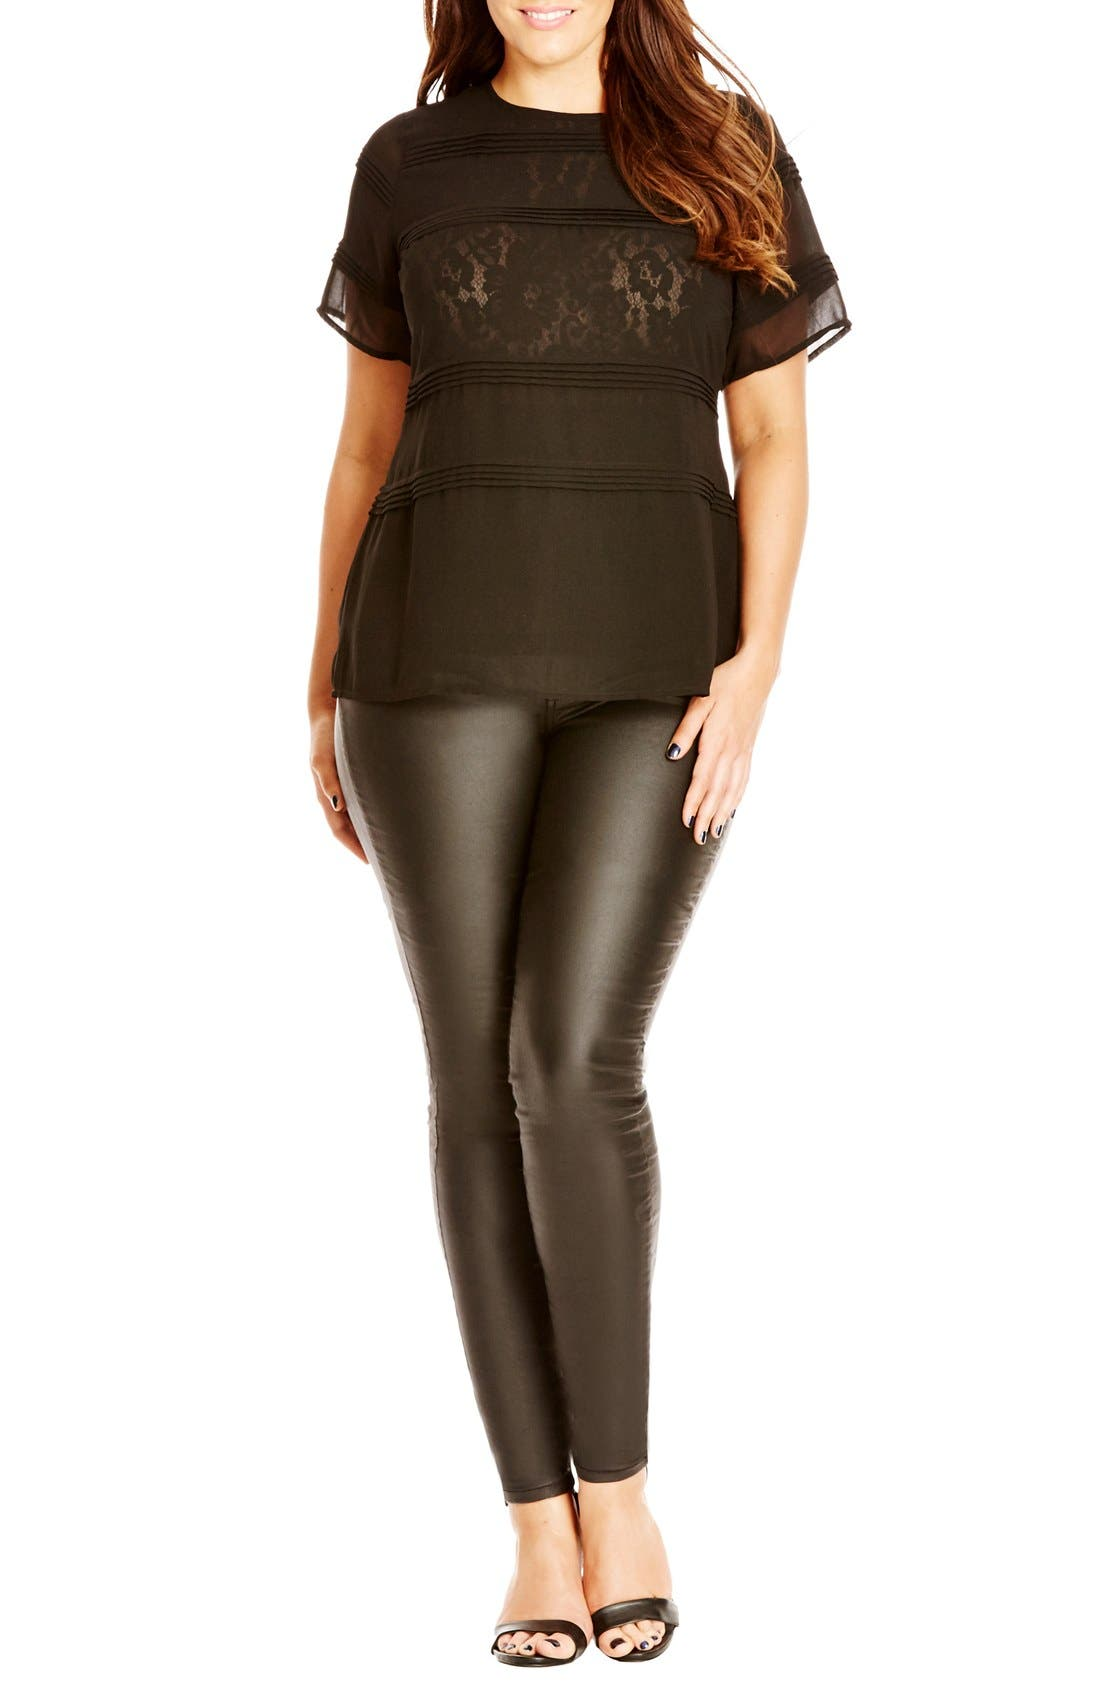 Alternate Image 1 Selected - City Chic Pintuck Lace Layer Top (Plus Size)